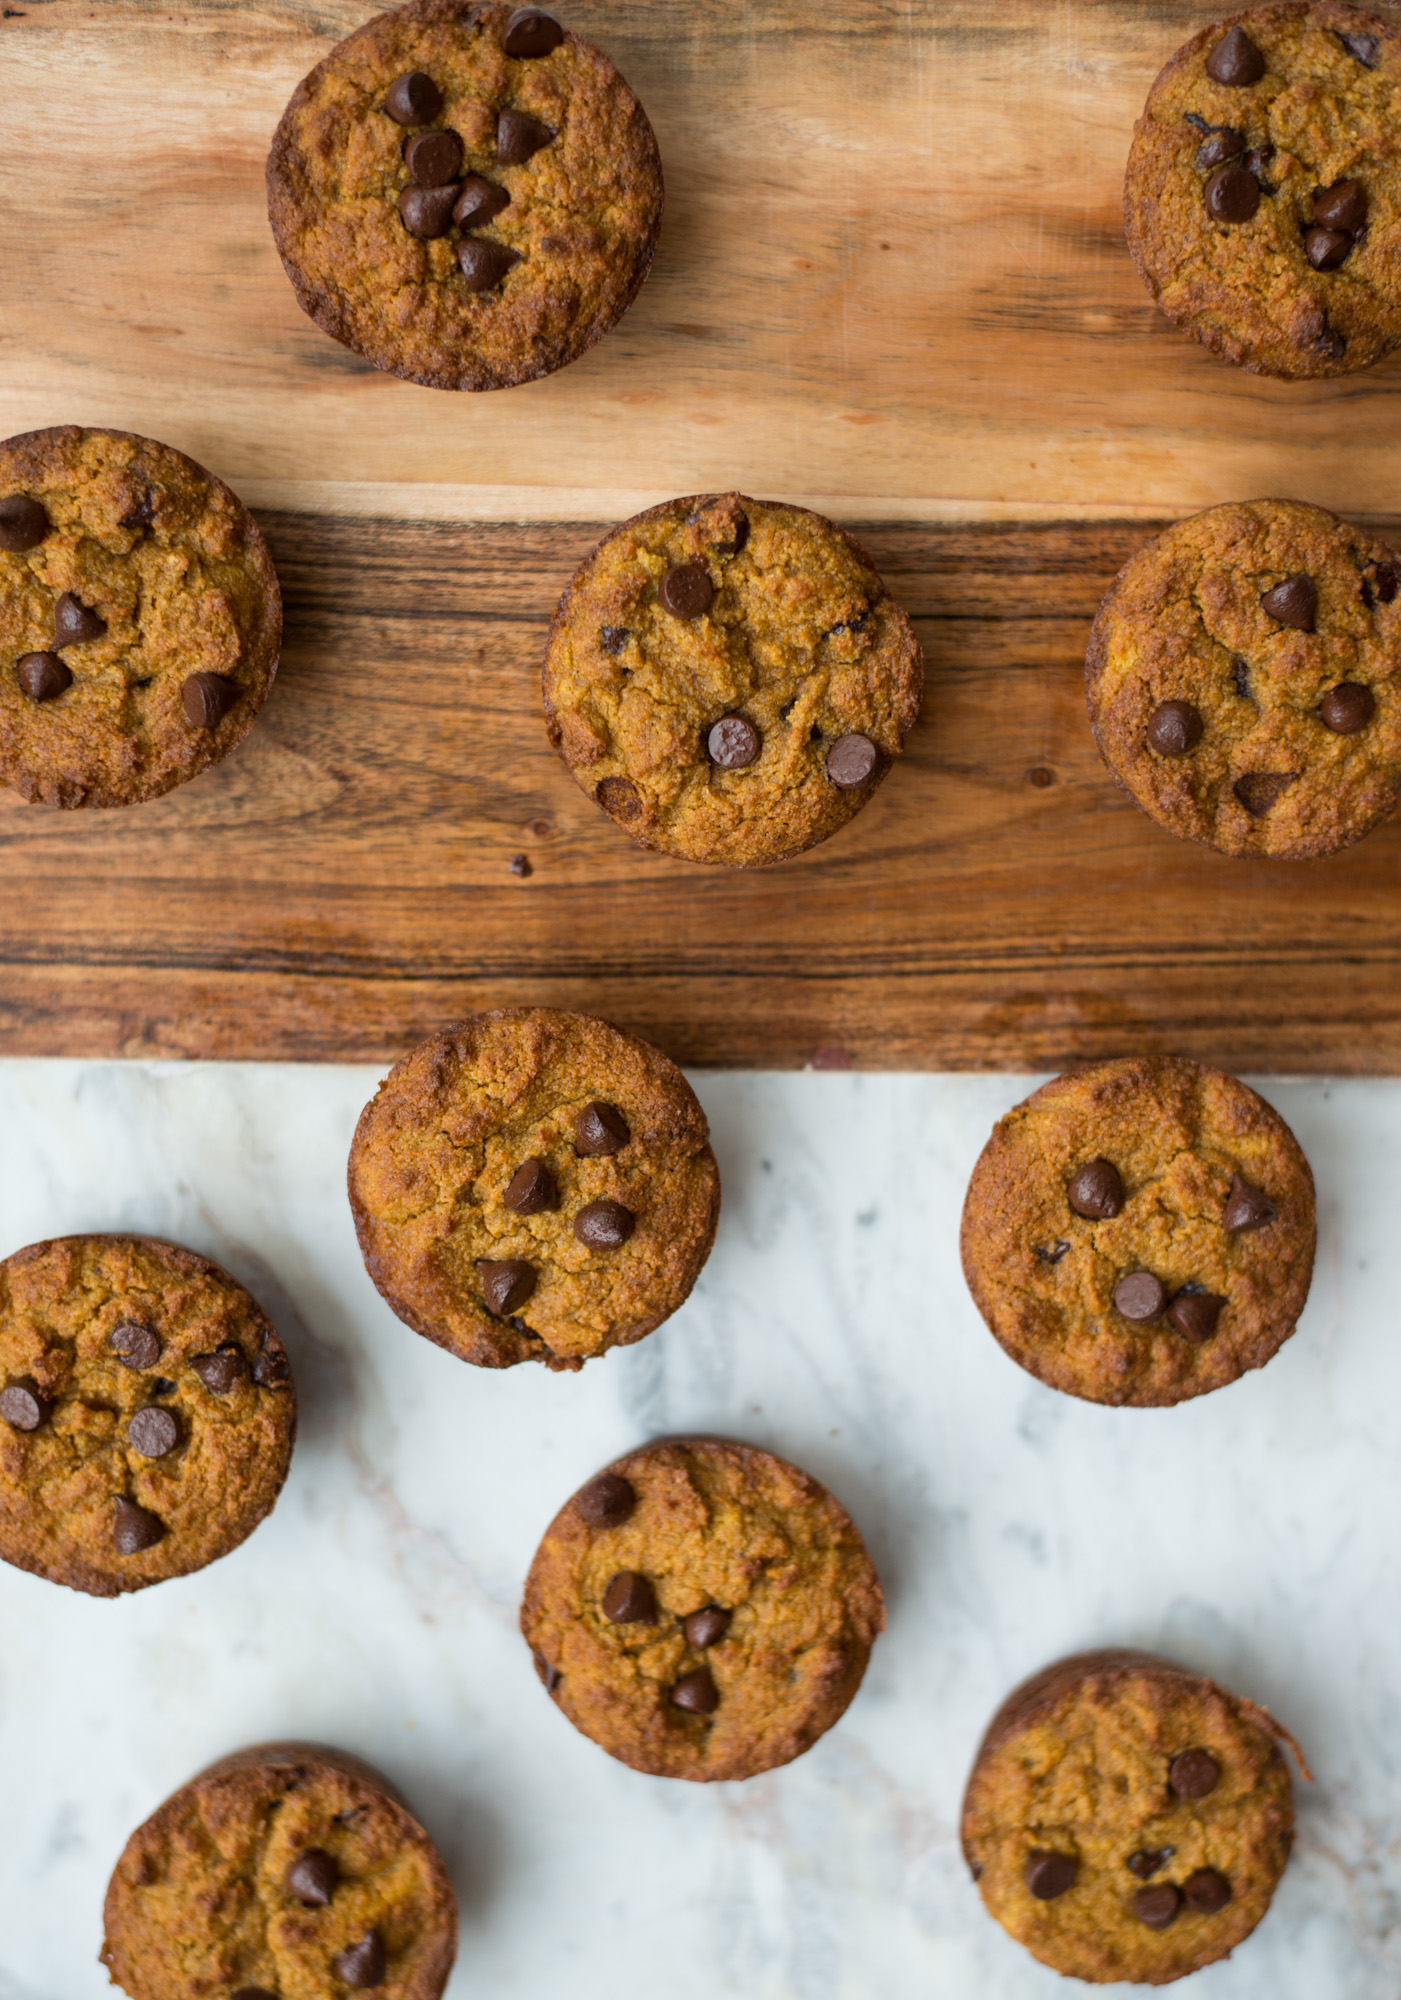 One-Bowl Pumpkin Chocolate Chip Muffins are naturally grain-free, dairy-free, gluten-free and naturally-sweetened. A health muffin recipe that's simple to make and tastes amazing. #realfoodwholelife #realfoodwholeliferecipe #glutenfree #dairyfree #healthyrecipe #paleo #paleorecipe #grainfree #cleaneating #muffin #healthymuffin #pumpkin #pumpkinrecipe #pumpkinspice #fall #fallrecipe